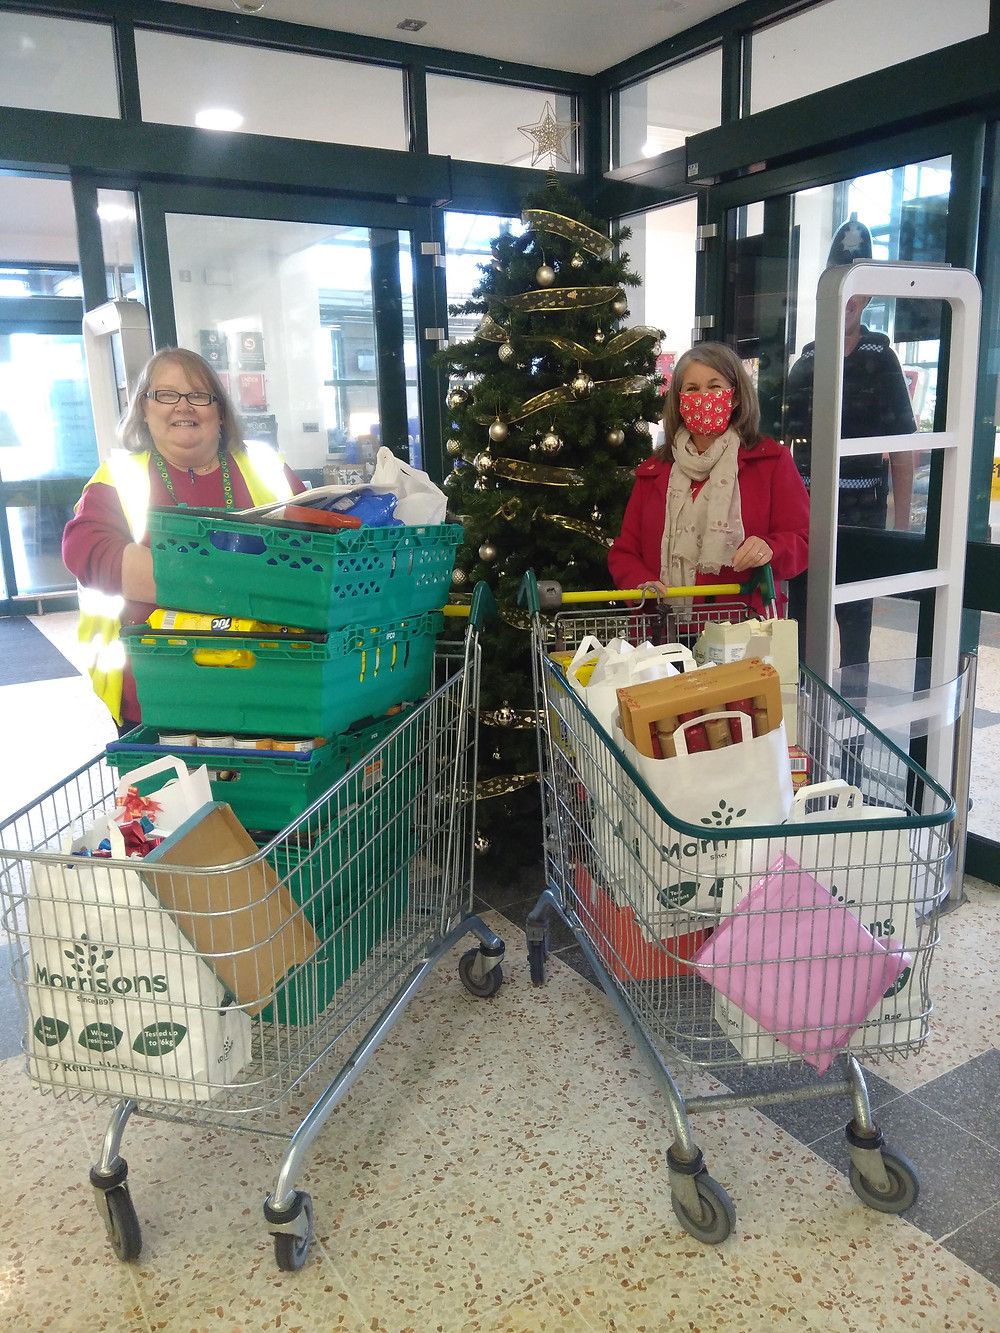 Photo shows Karen, left, and Pam, right, stood behind a trolley each, filled with Morrisons bags full of items. Behind them is a Christmas tree. They are stood in the entrance way at Morrisons in Morecambe.